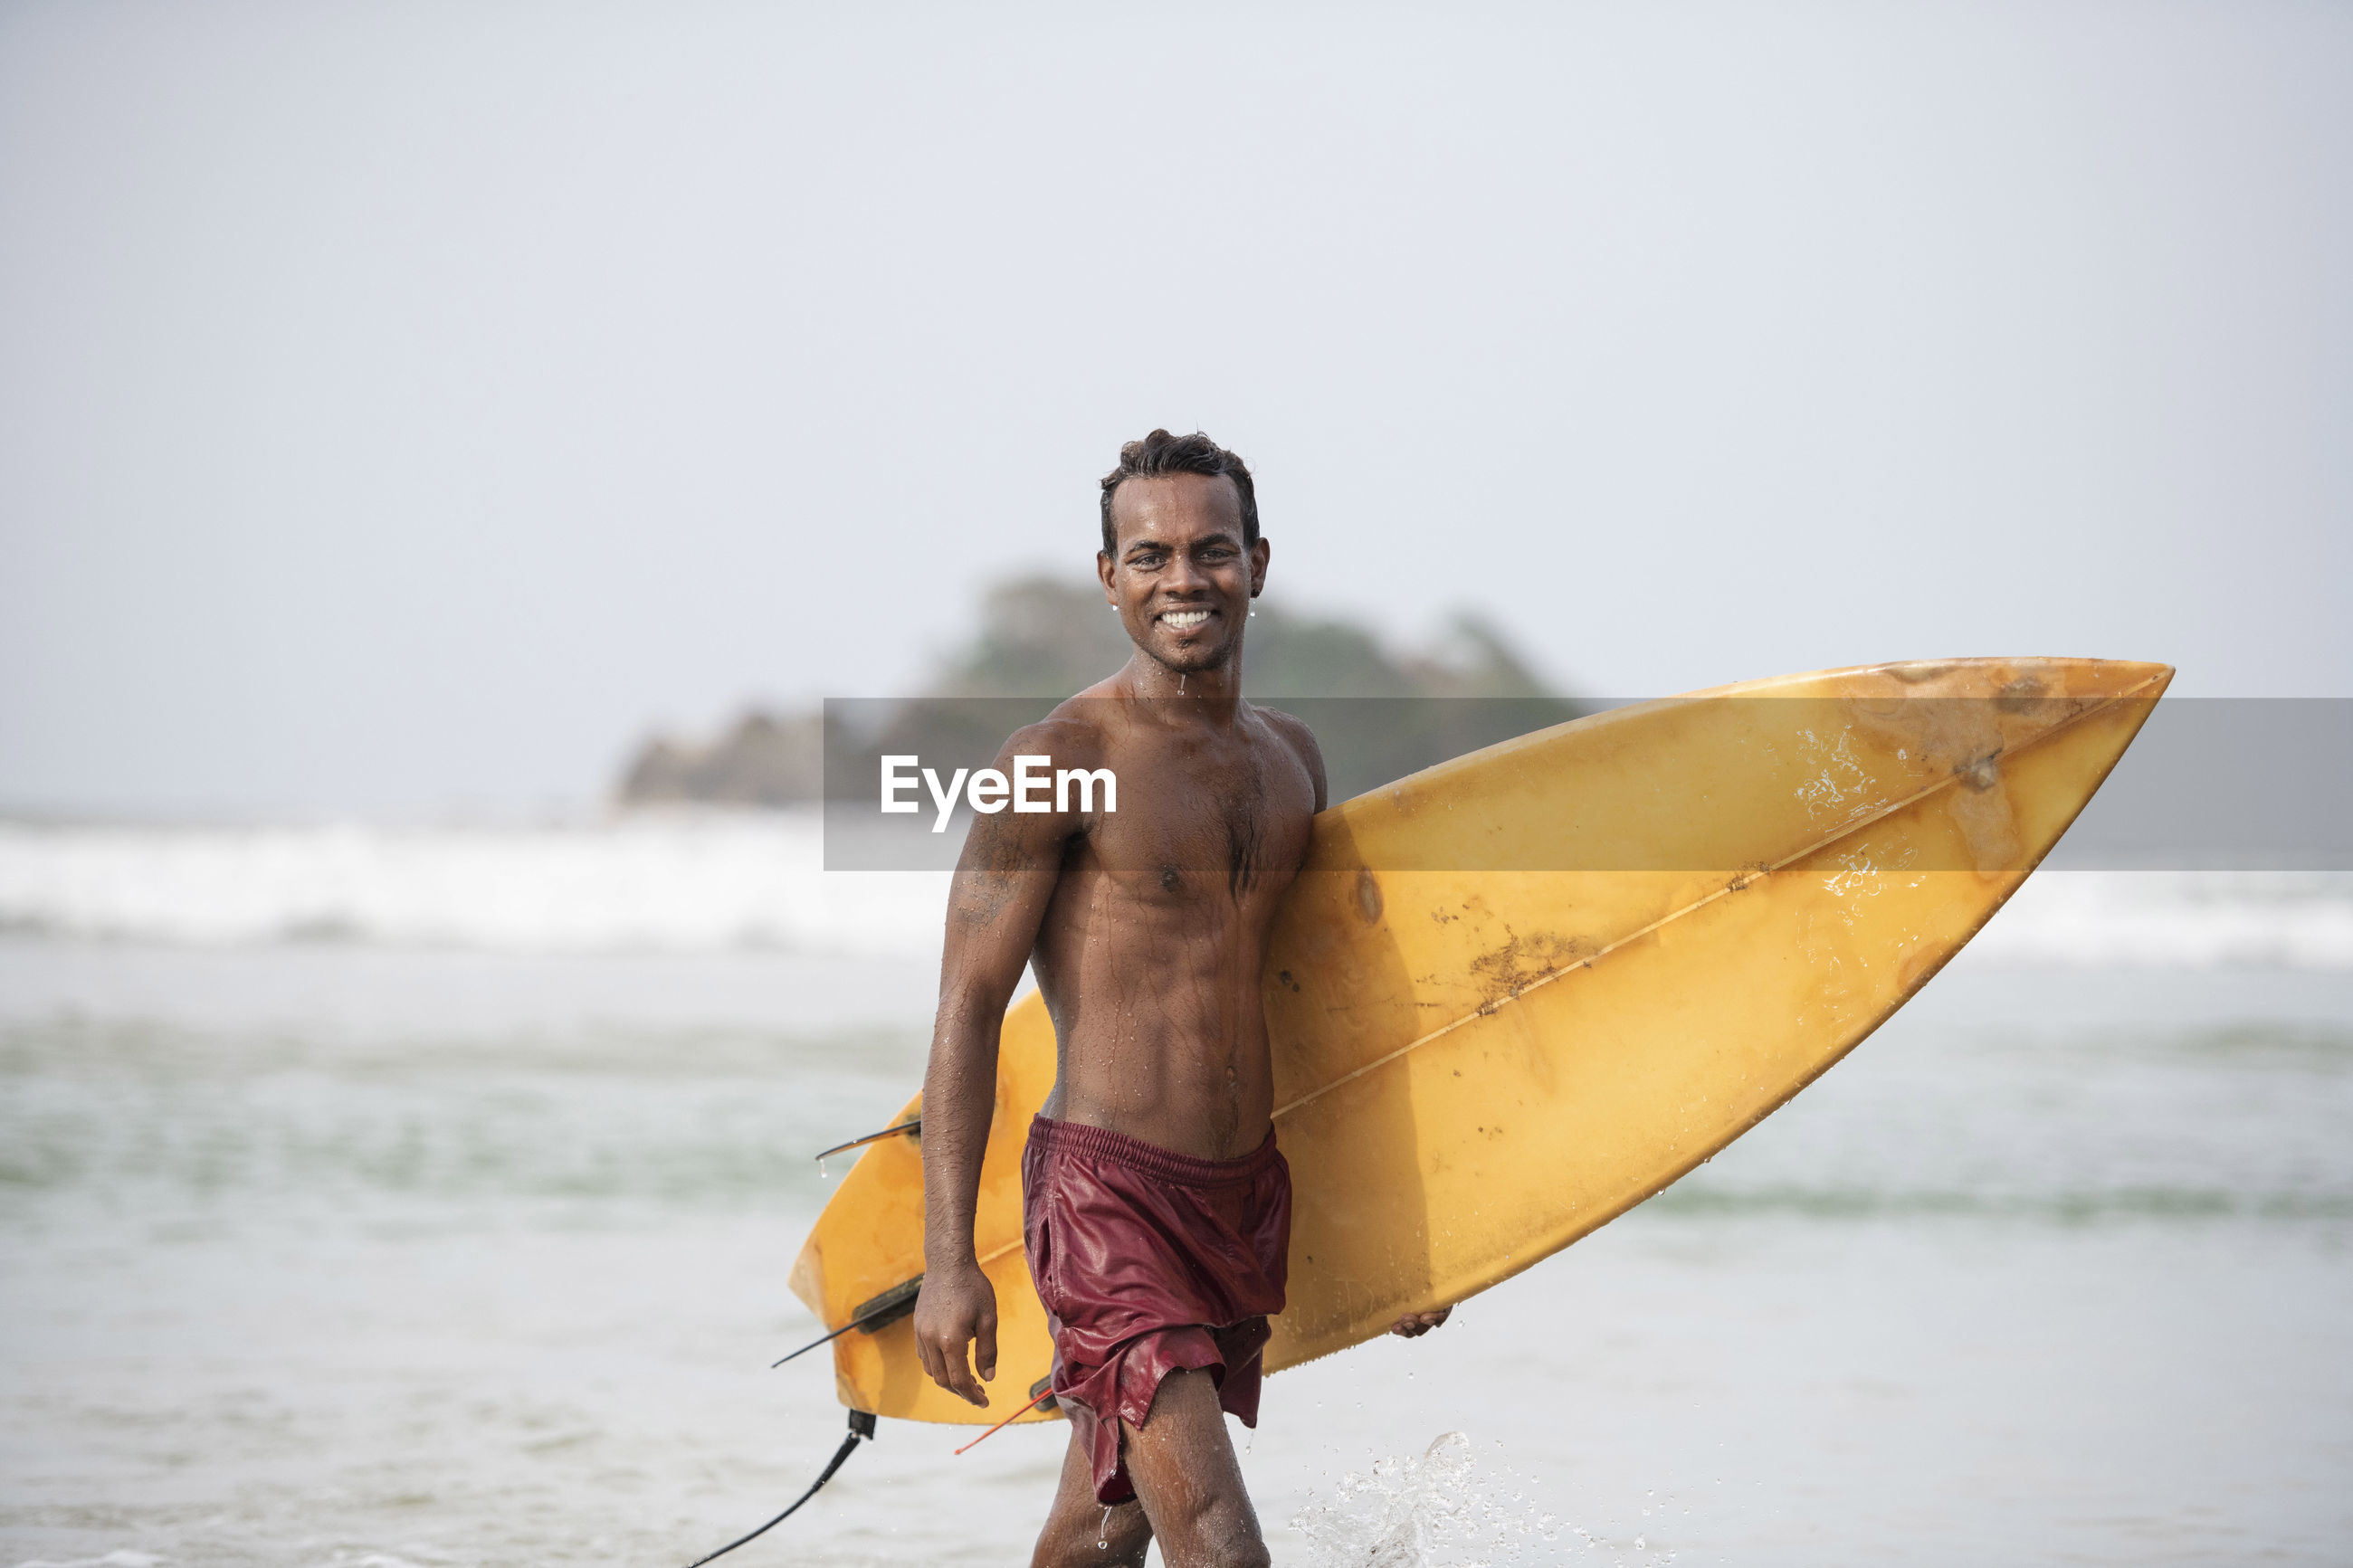 Portrait of shirtless male surfer carrying surfboard in sea